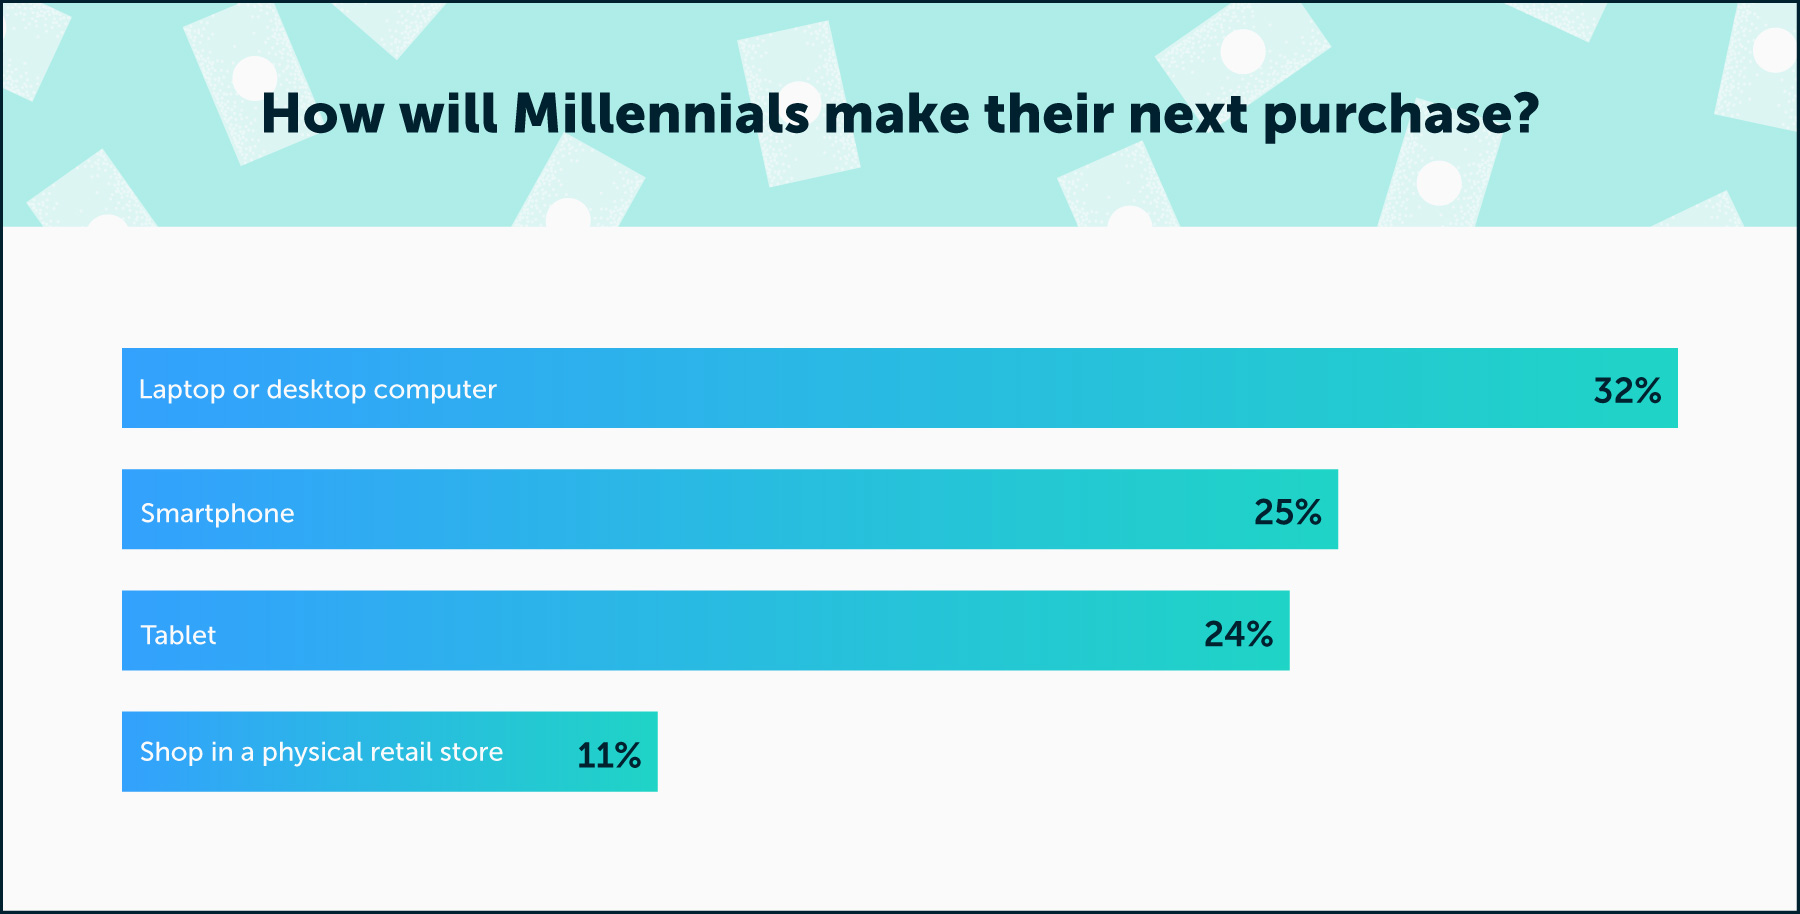 bar chart showing how millennails will make their next purchase